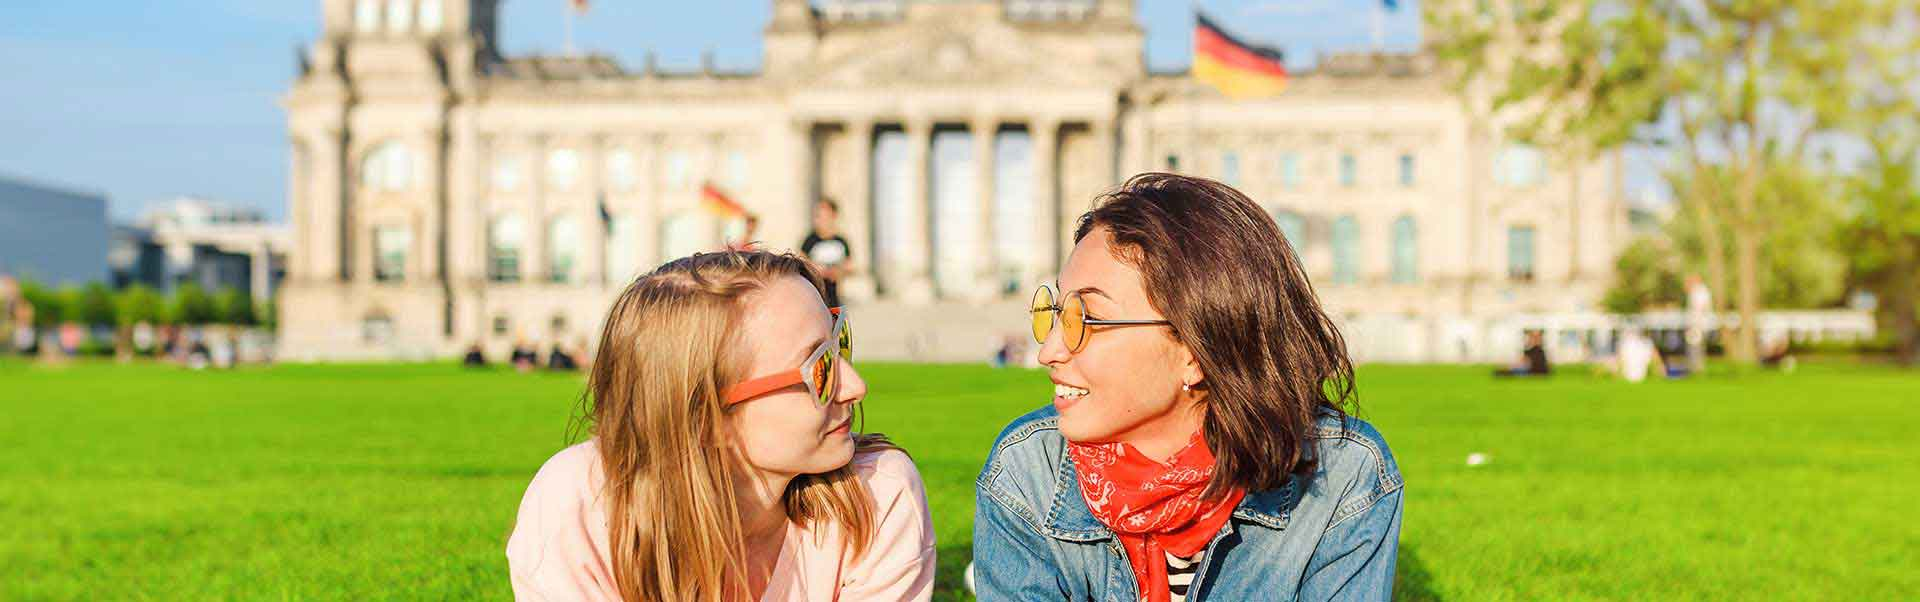 2019 Educatius High School Programs in Germany for International Students